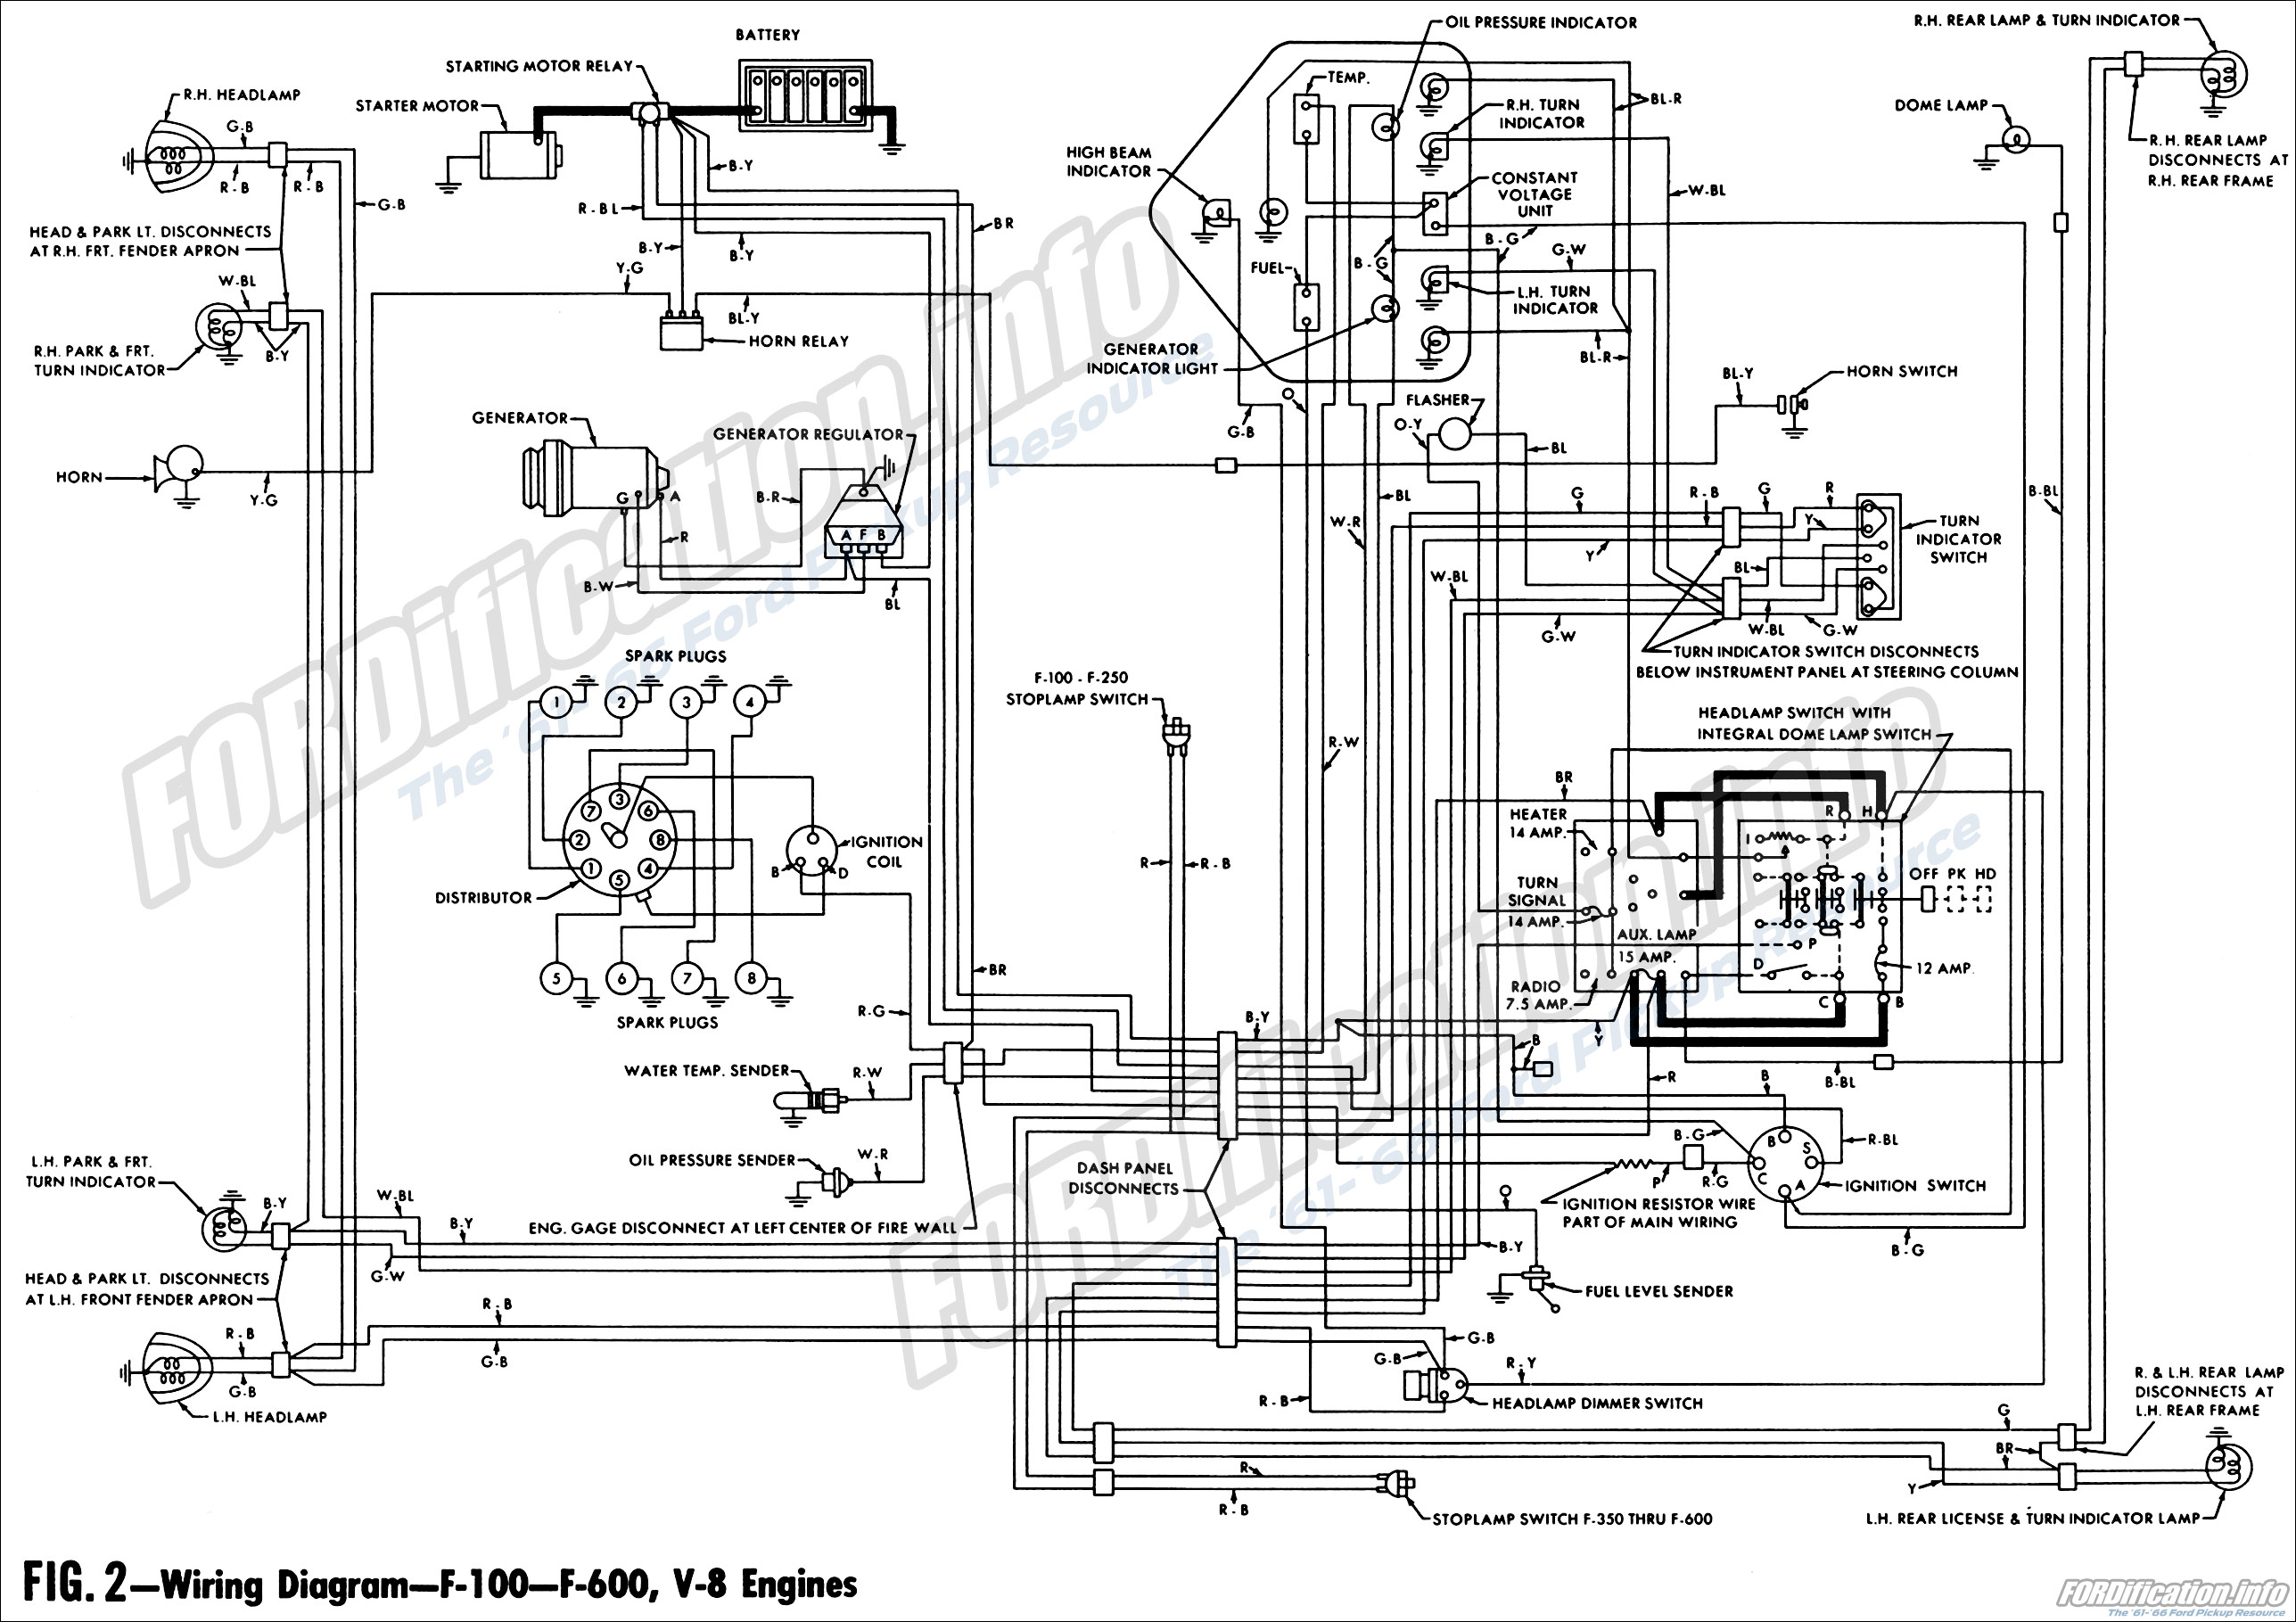 1960 Ford F100 Wiring Diagram Schematic Diagrams Truck 1961 Diy Enthusiasts U2022 Oil Pump